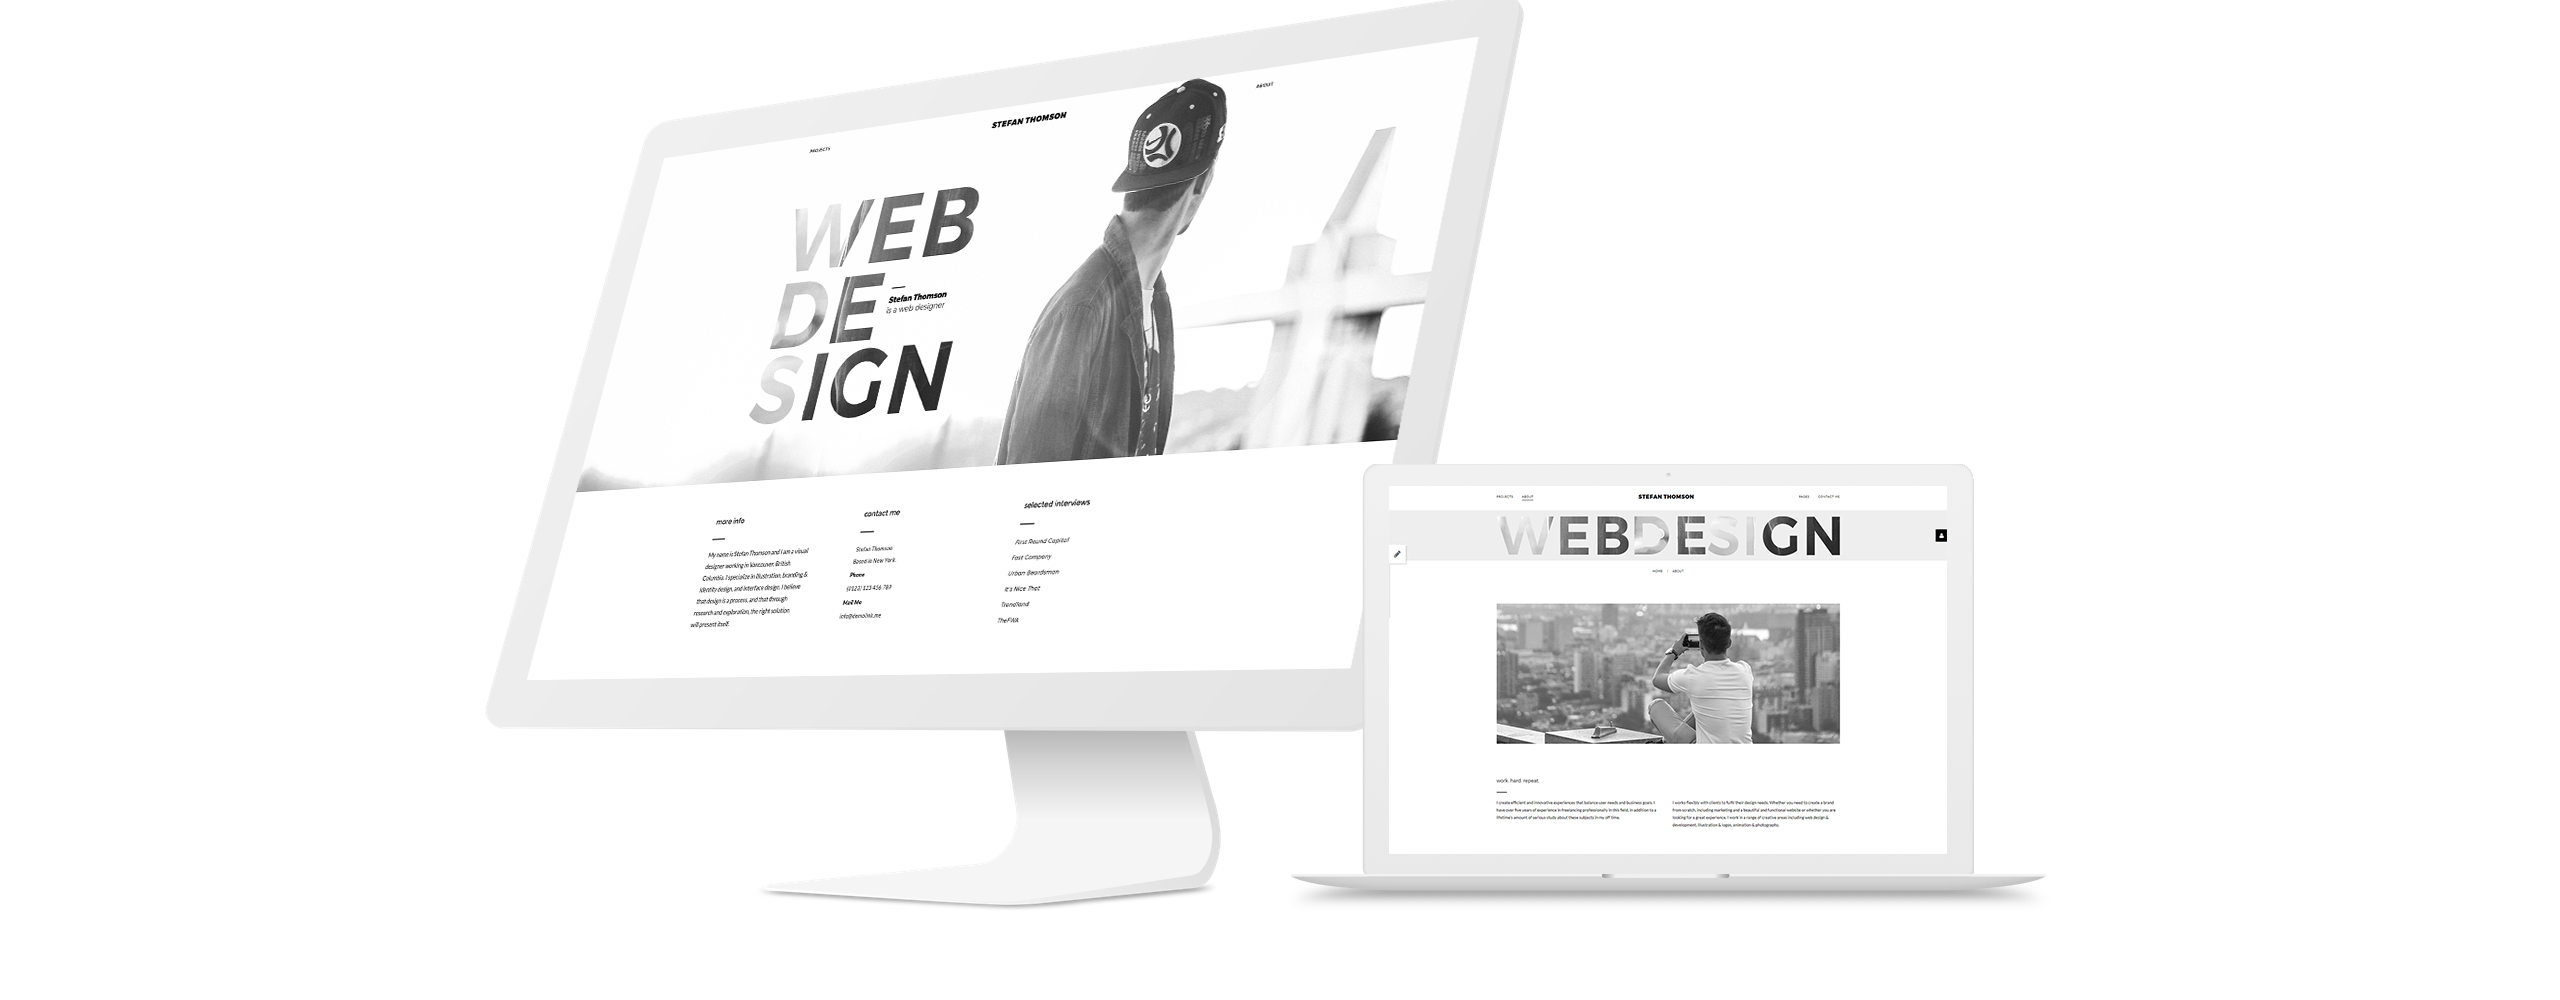 Website Design Template 67286 - business service video videographer studio agency